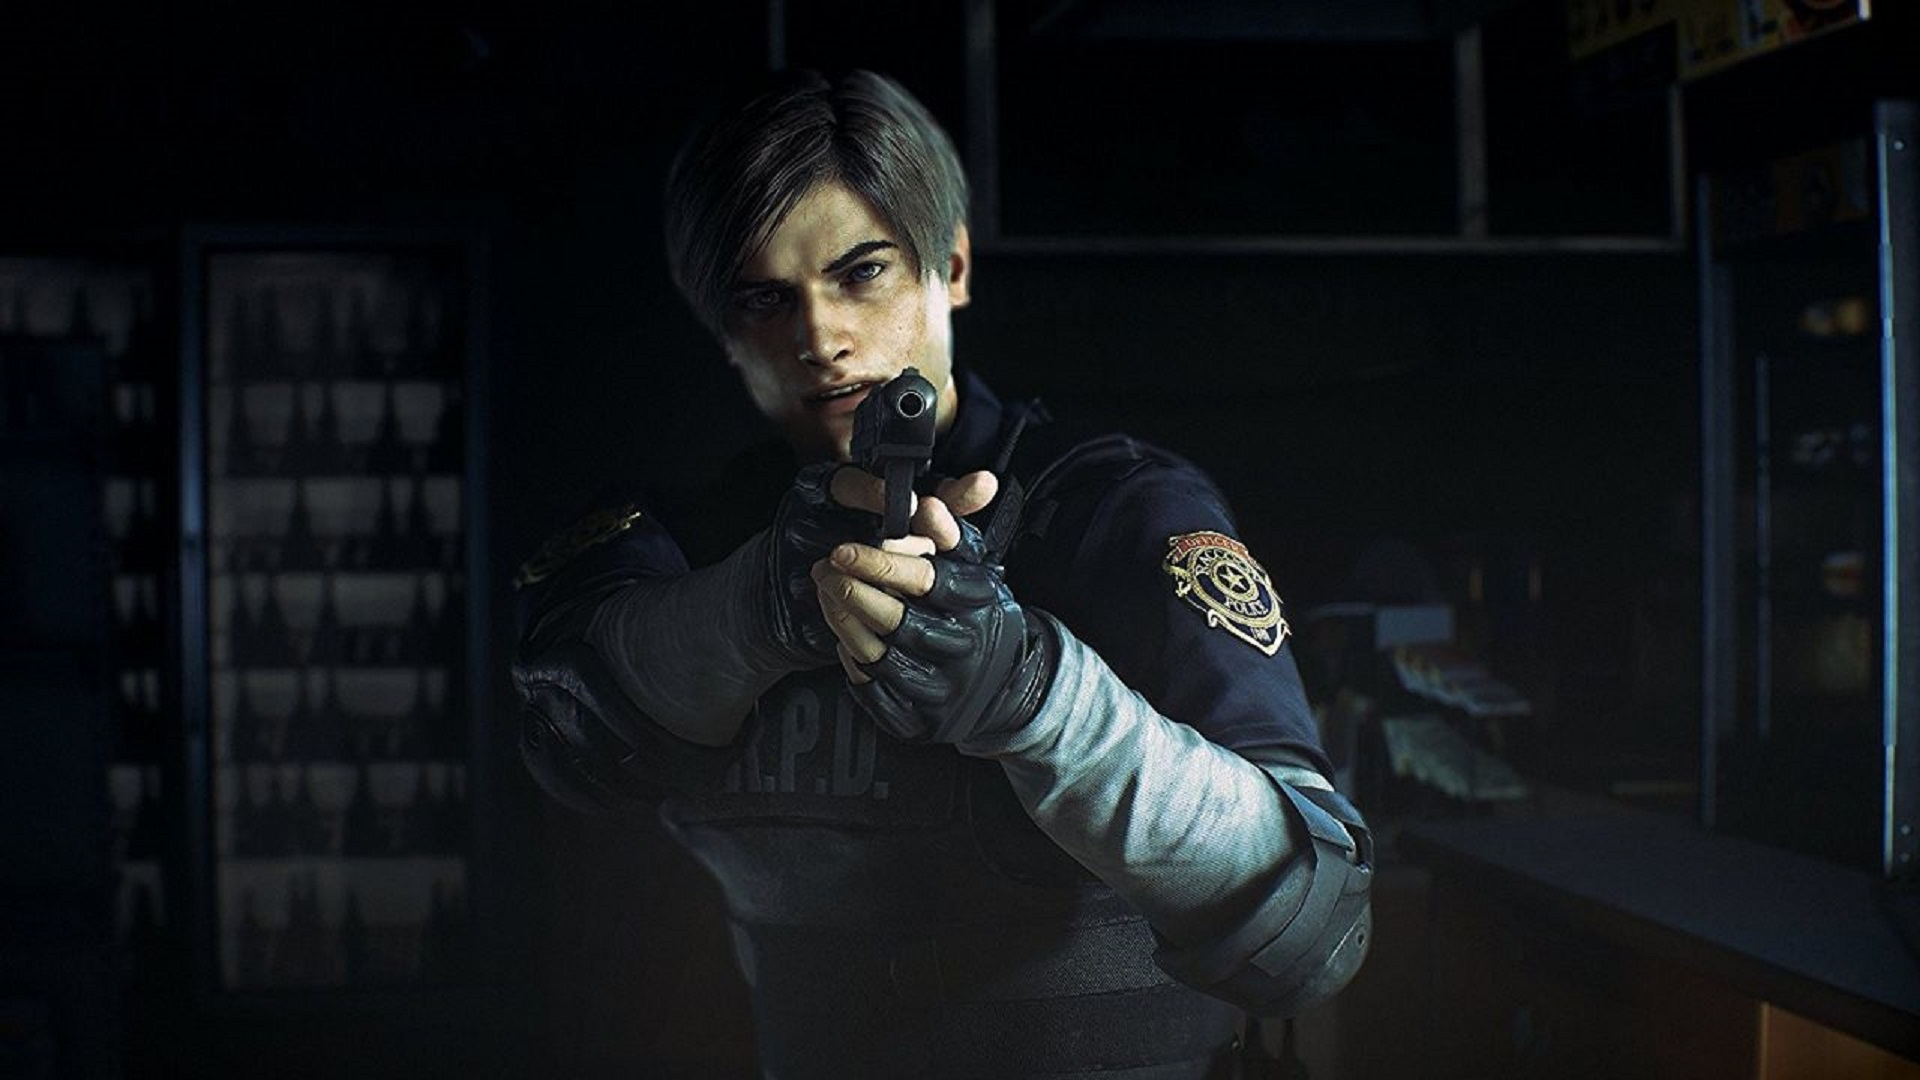 A Leaked Resident Evil 2 Remake Image Gives Fans Their First Clear